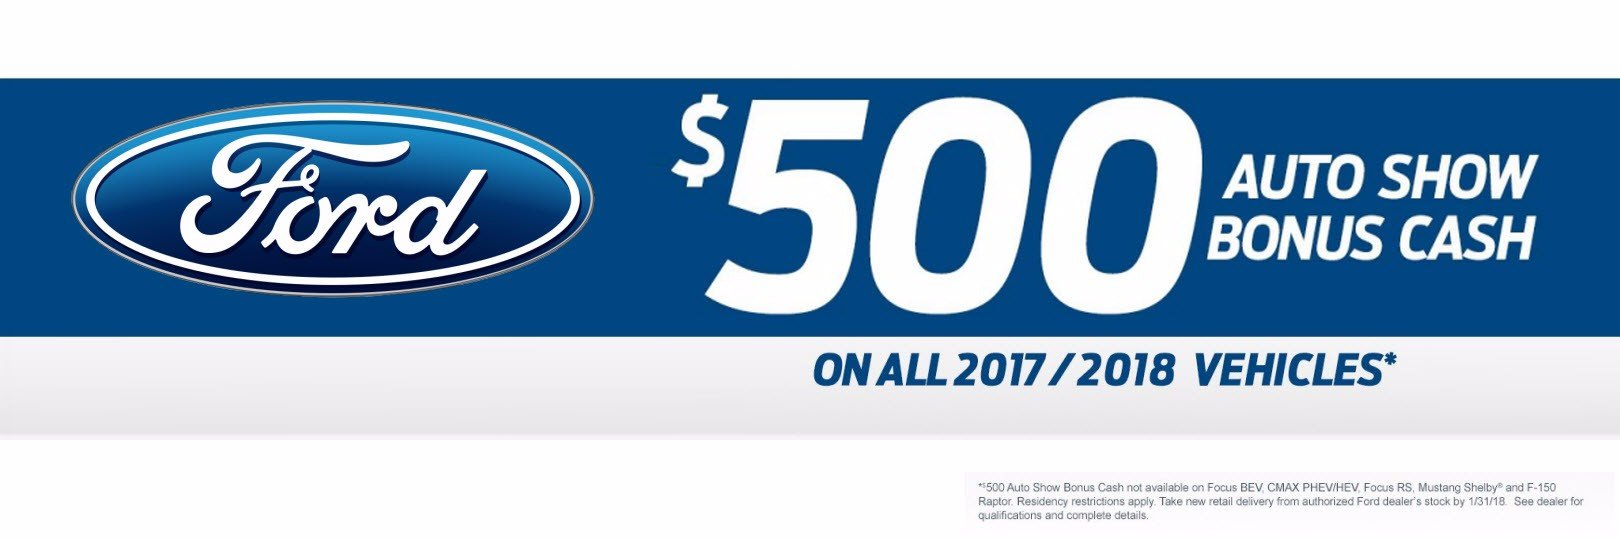 January 2018 Philly Auto Show Cash $500 Incentive